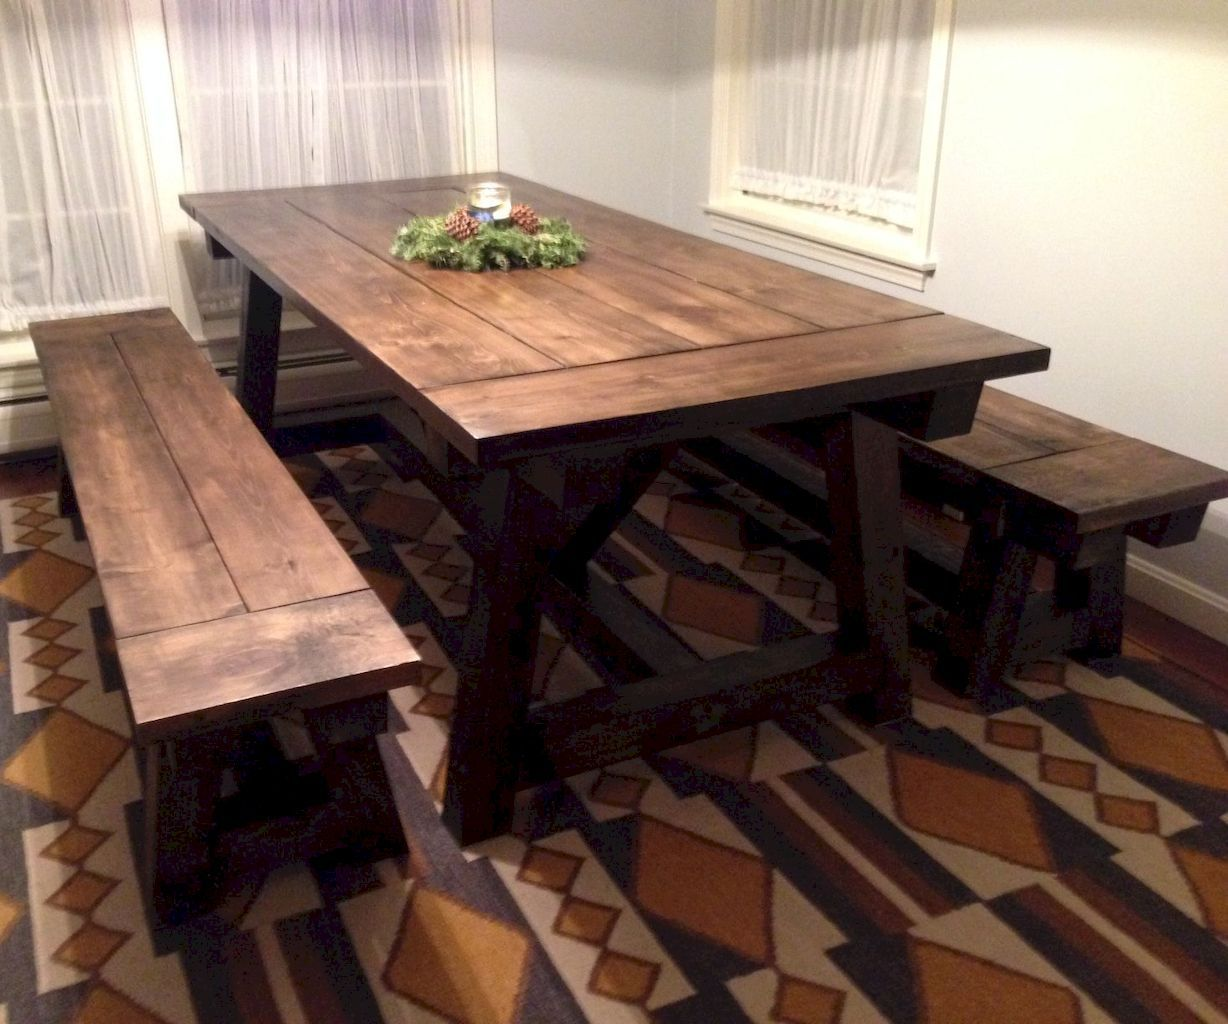 Enhance Dinning Room With Farmhouse Table Home To Z Farmhouse Dining Table Build A Farmhouse Table Farmhouse Dining Room Table